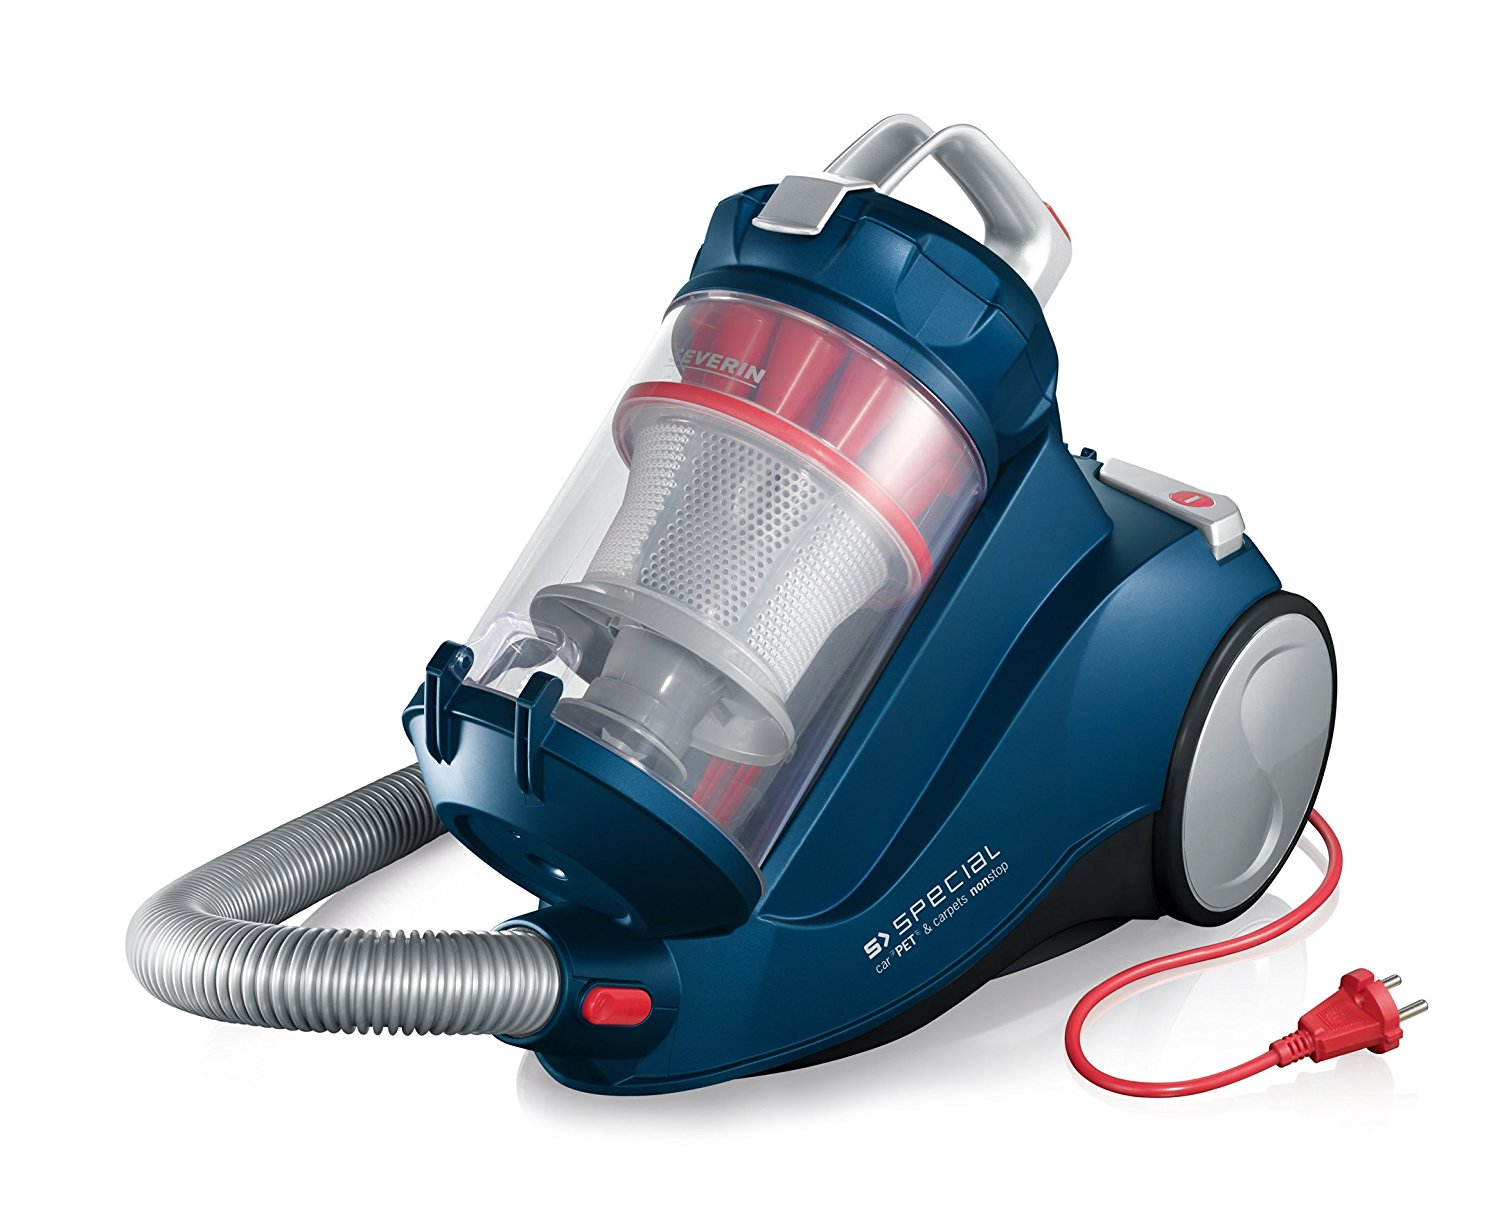 Severin S Special Bagless Vacuum Cleaner, Ocean Blue, MY7118  Corded